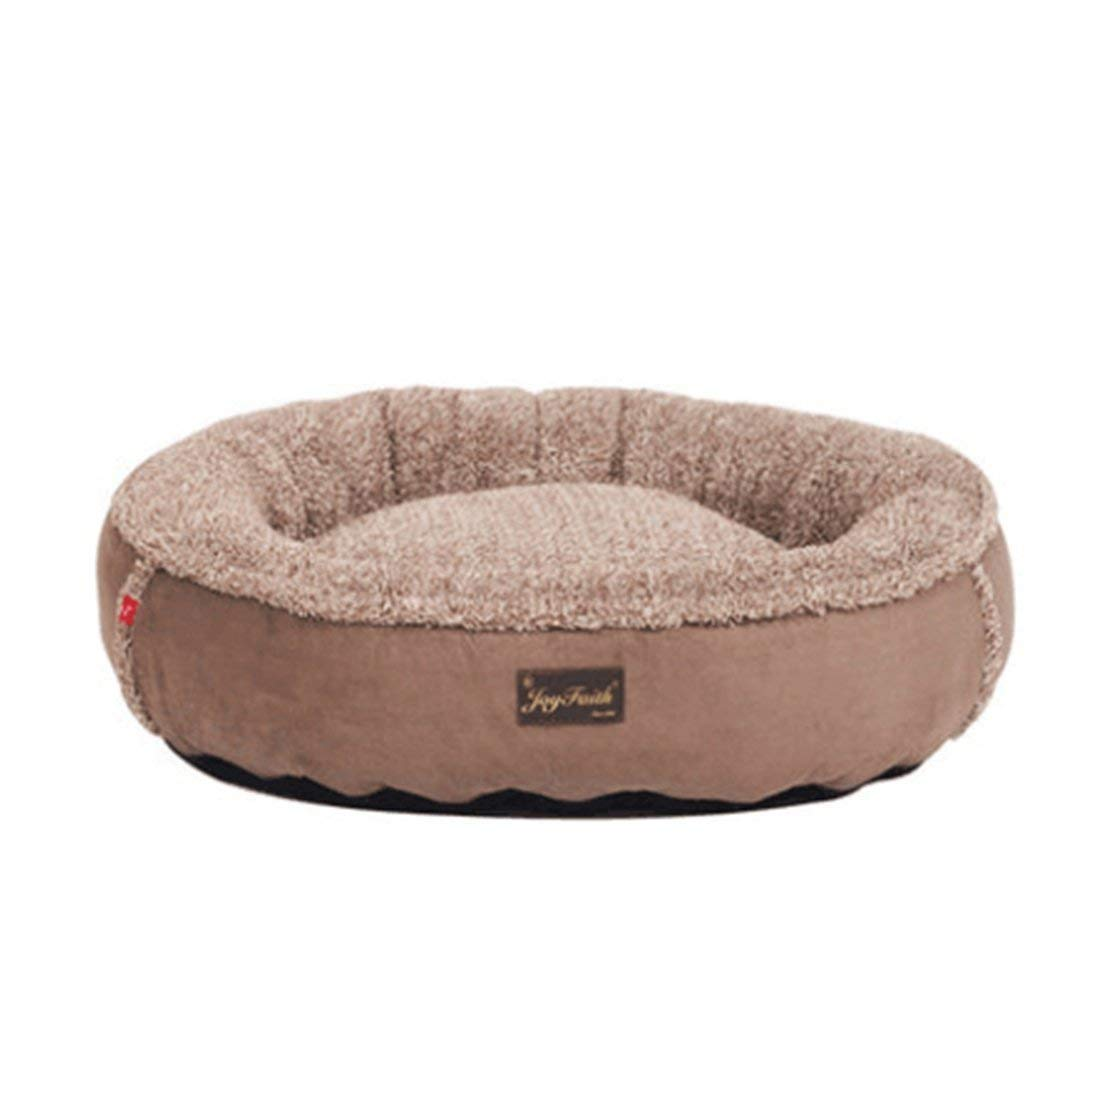 KIUJHY Fashion round Pet Nest, Kennel Mat Pet Supplies Detachable Clean Four Seasons Universal Soft and Comfortable Deep Sleep 65  55  15Cm (L)